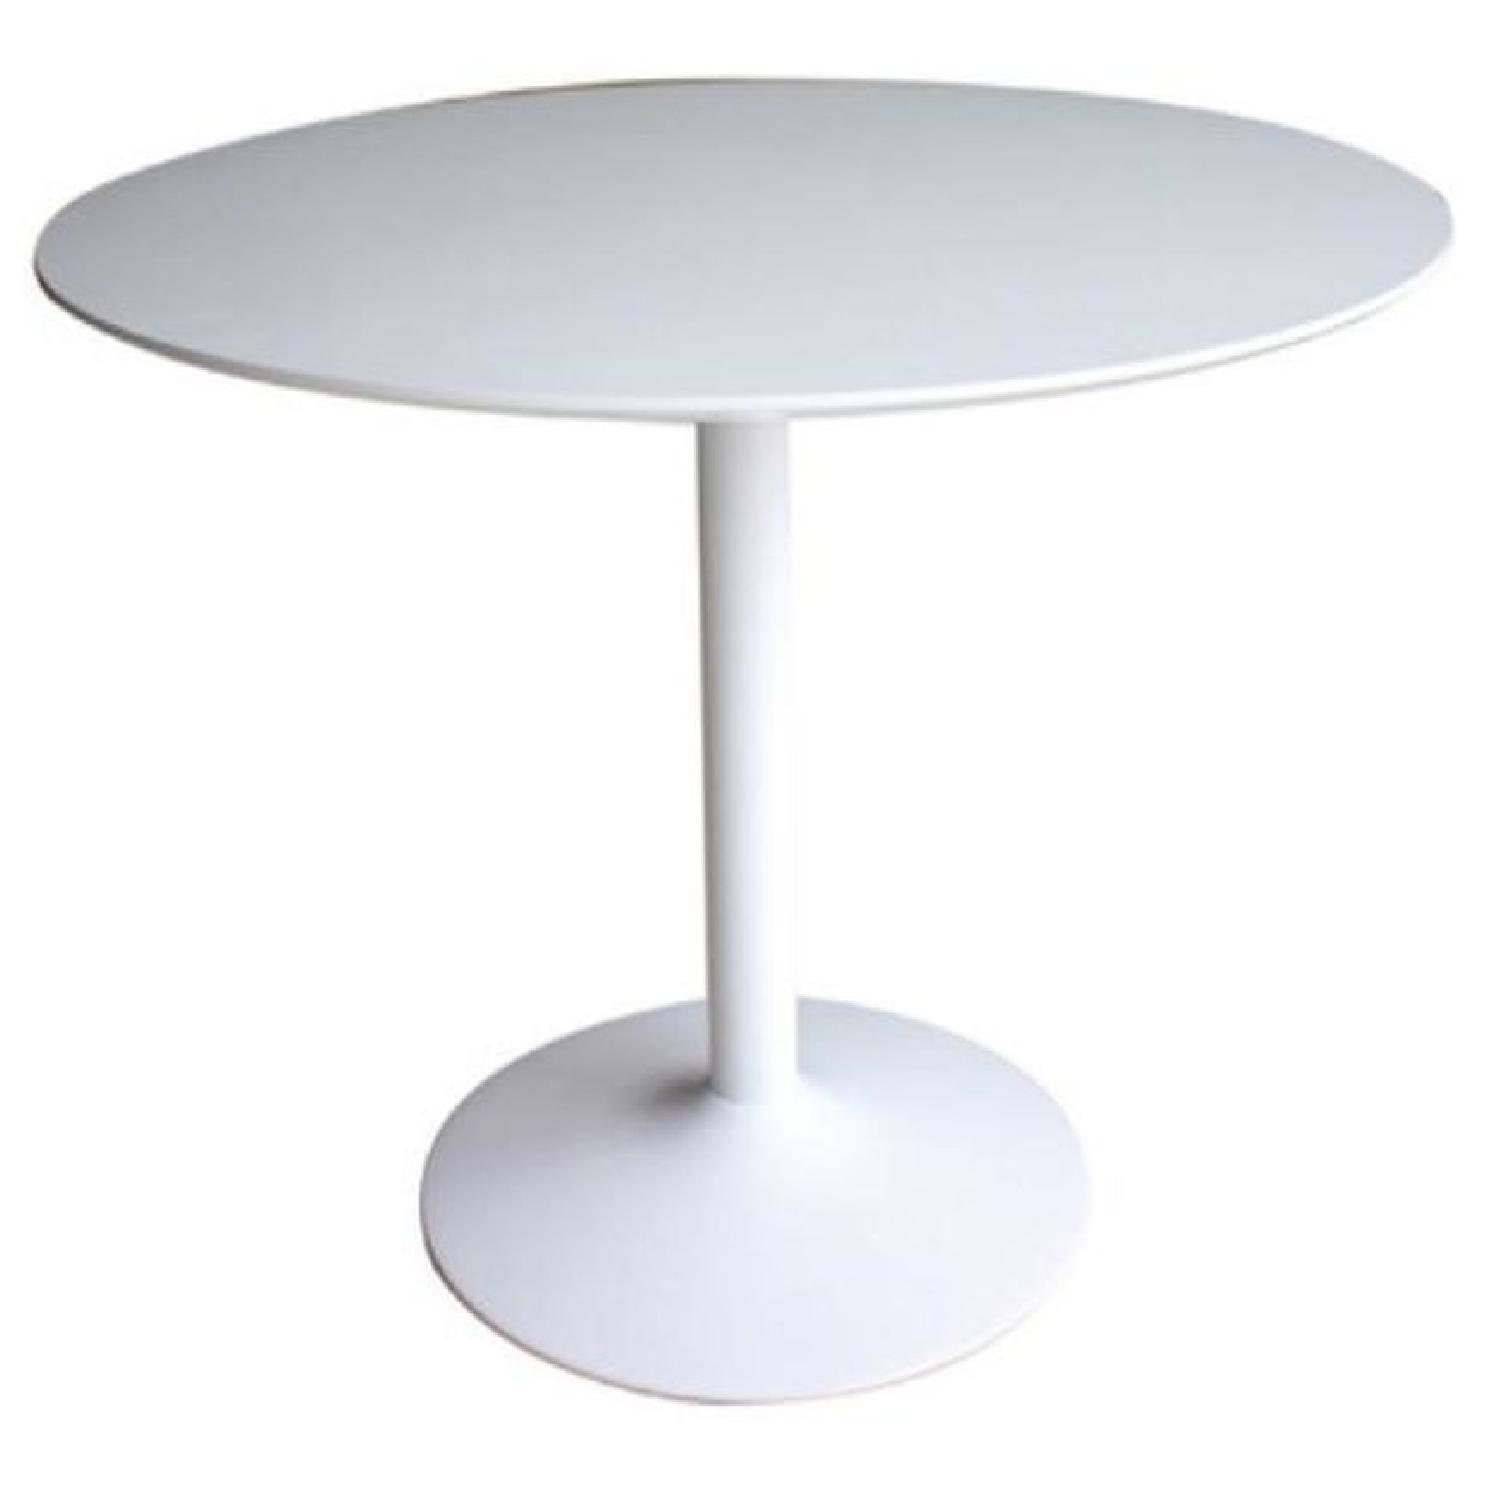 Mid Century Modern Style Dining Table in High Gloss Finish - image-0